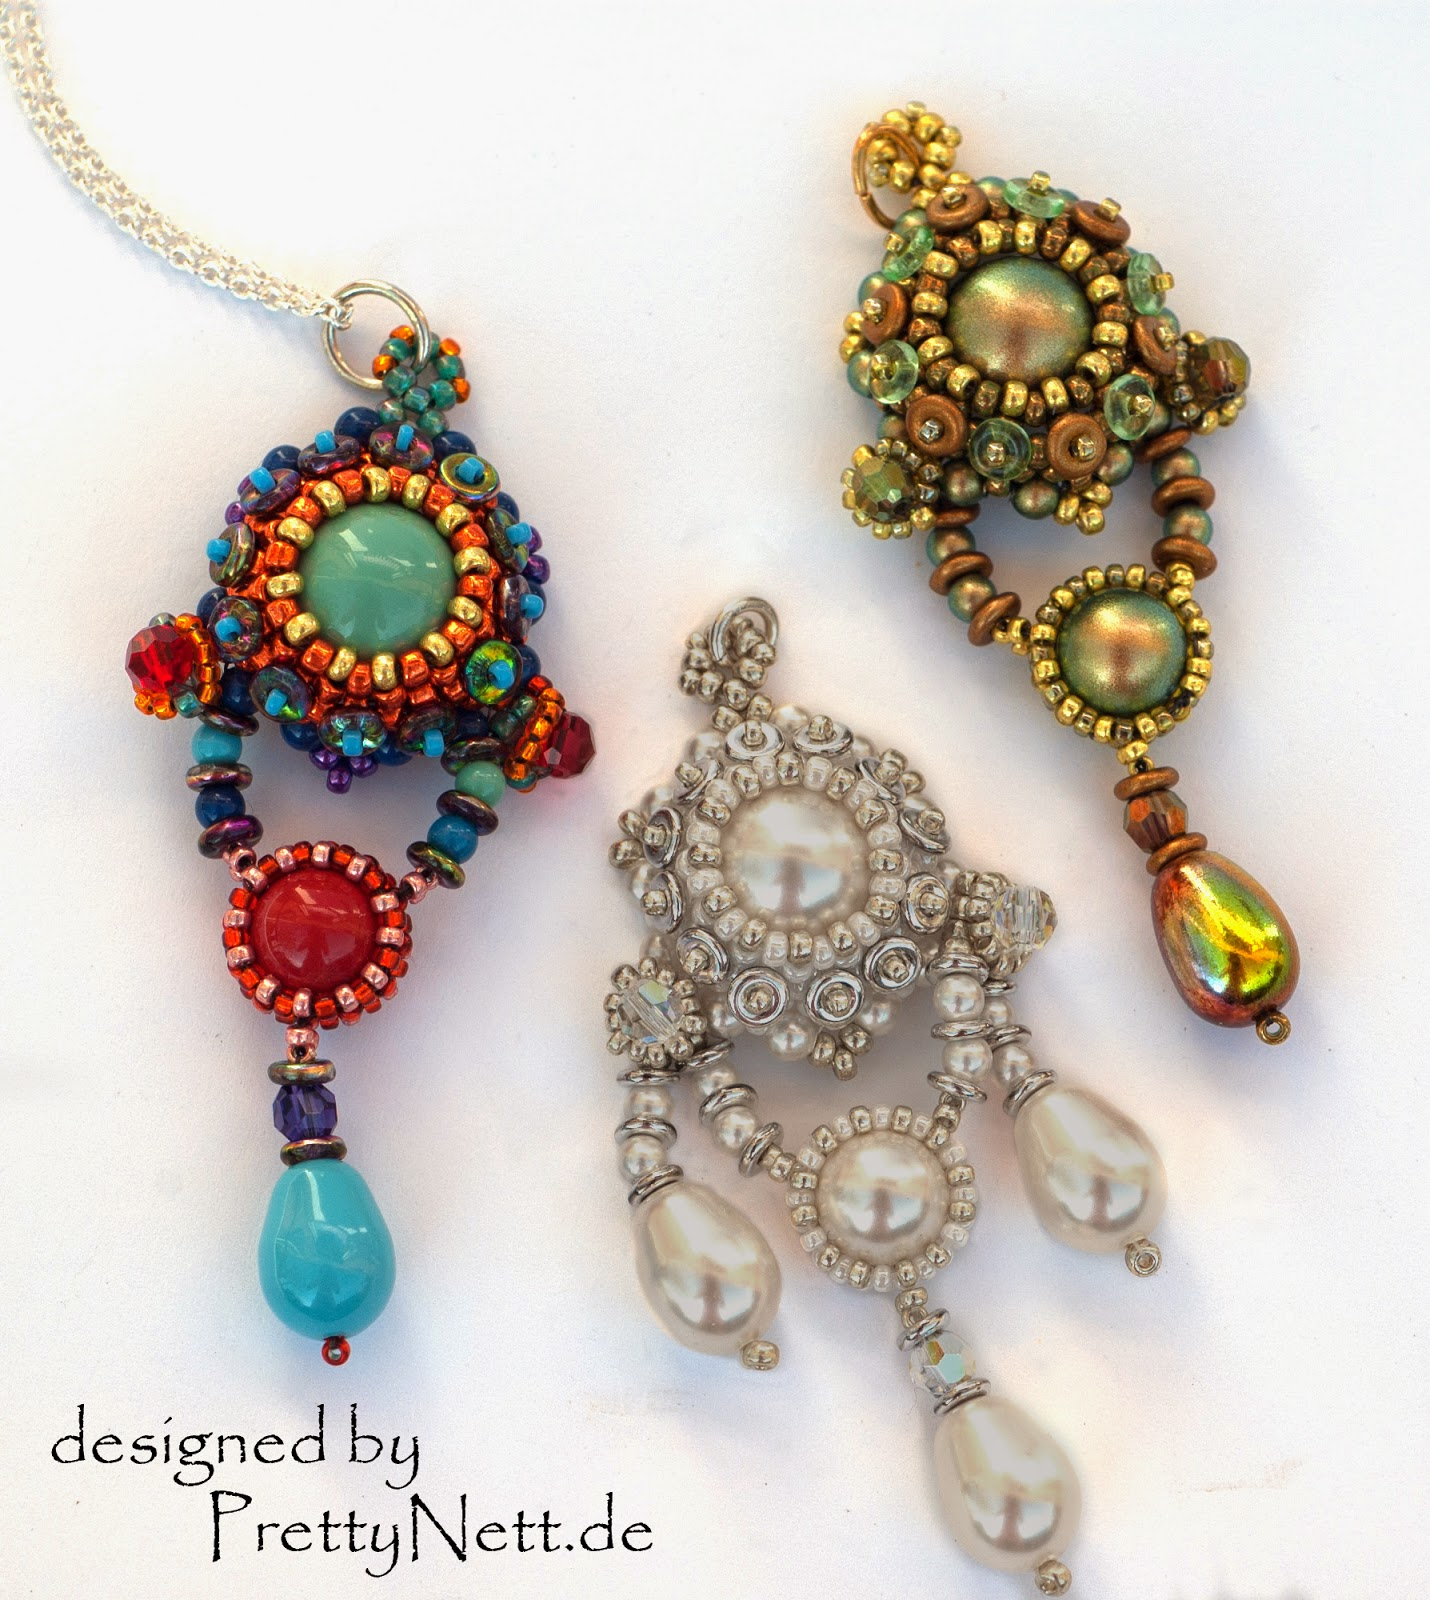 Beaded Pendant Anhänger QueenE - Tutorial by PrettyNett.de